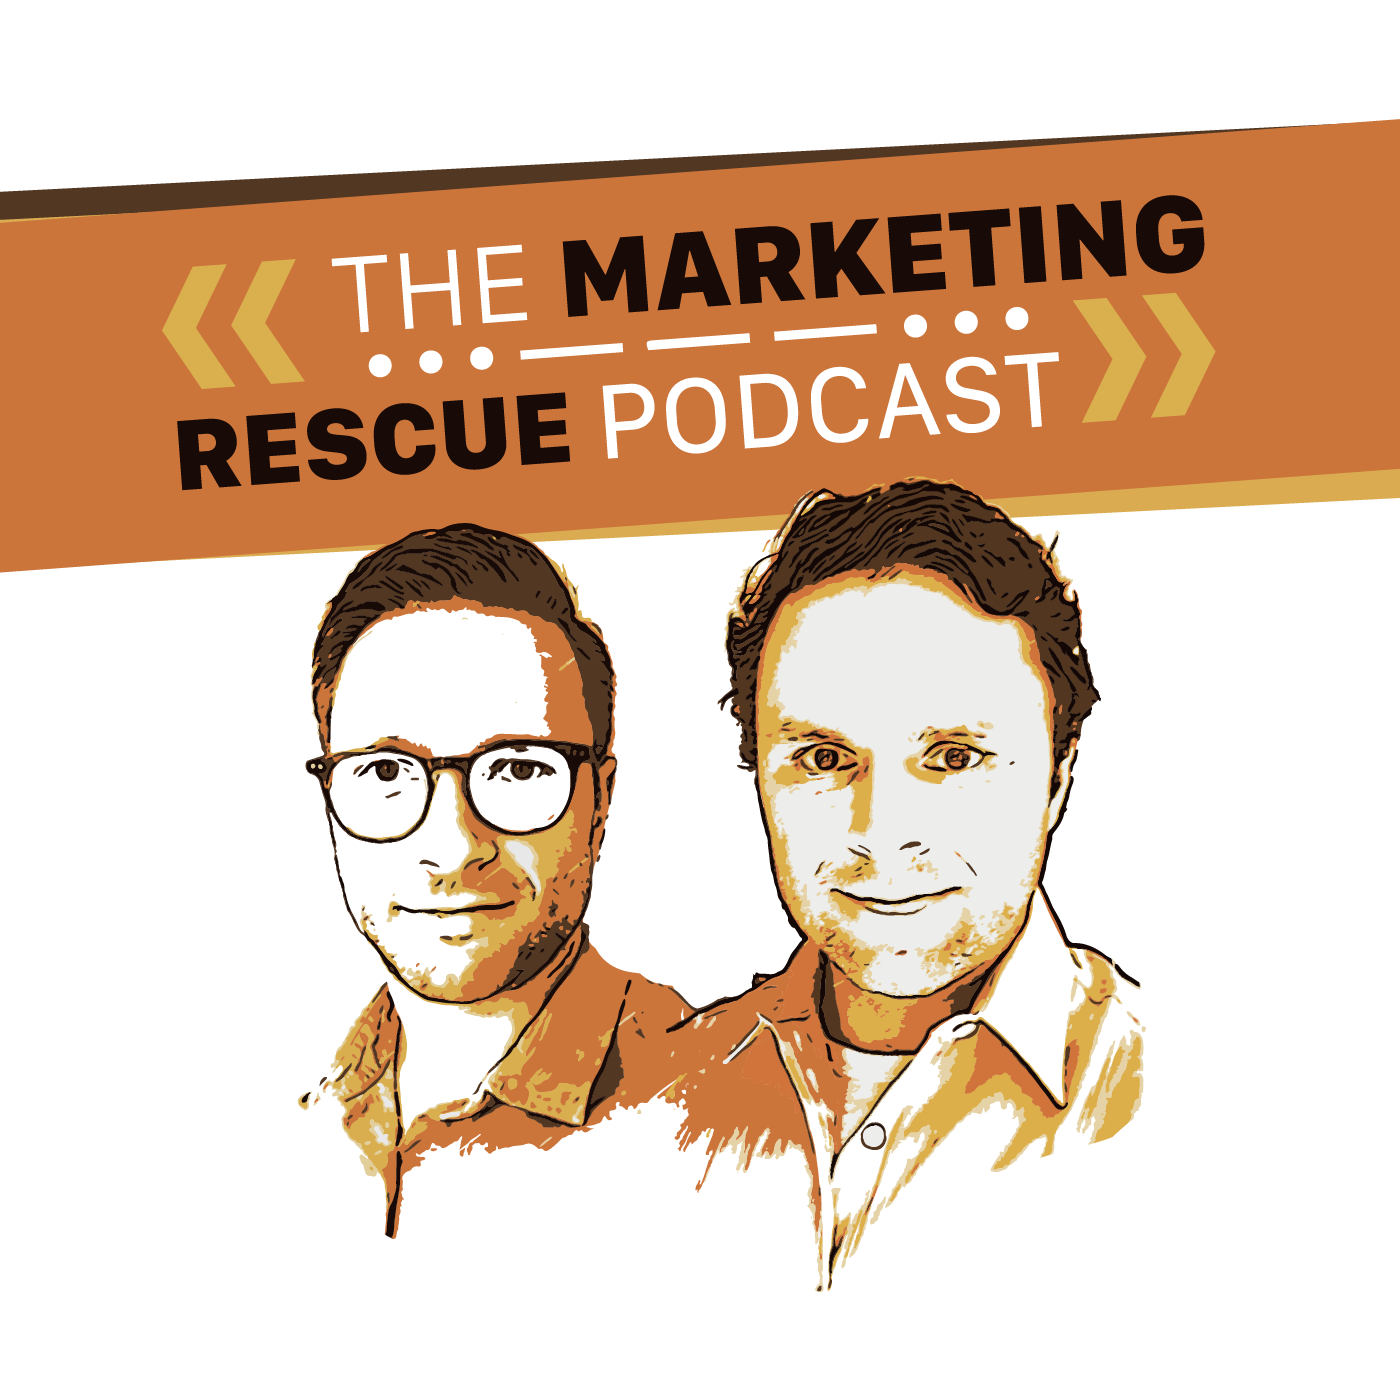 The Marketing Resucue Podcast